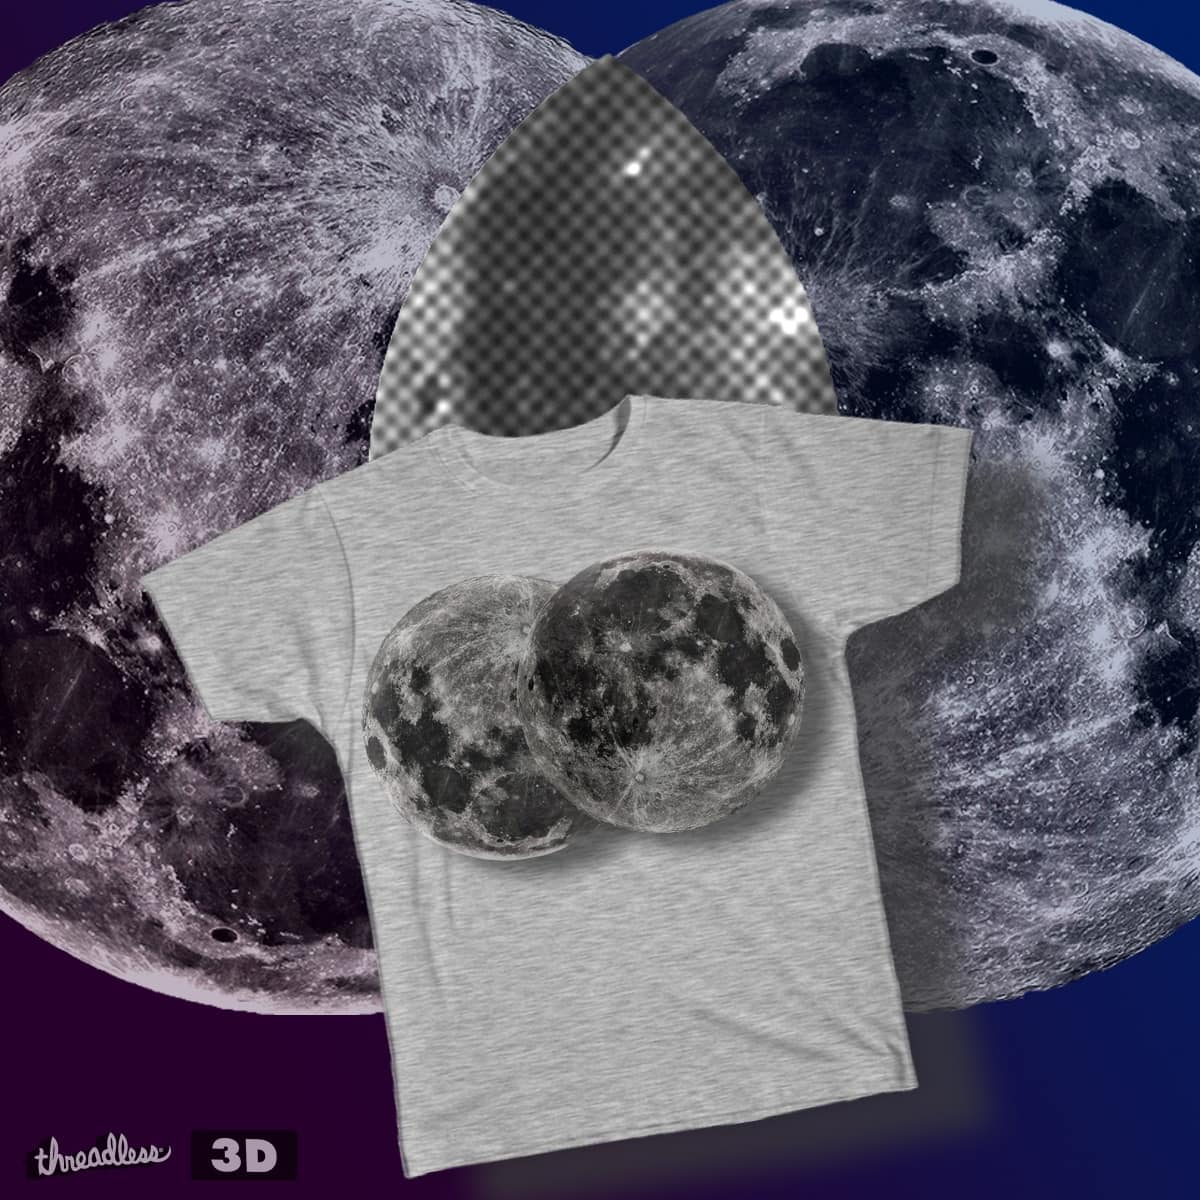 Moonsh by Cheshire Tailor on Threadless